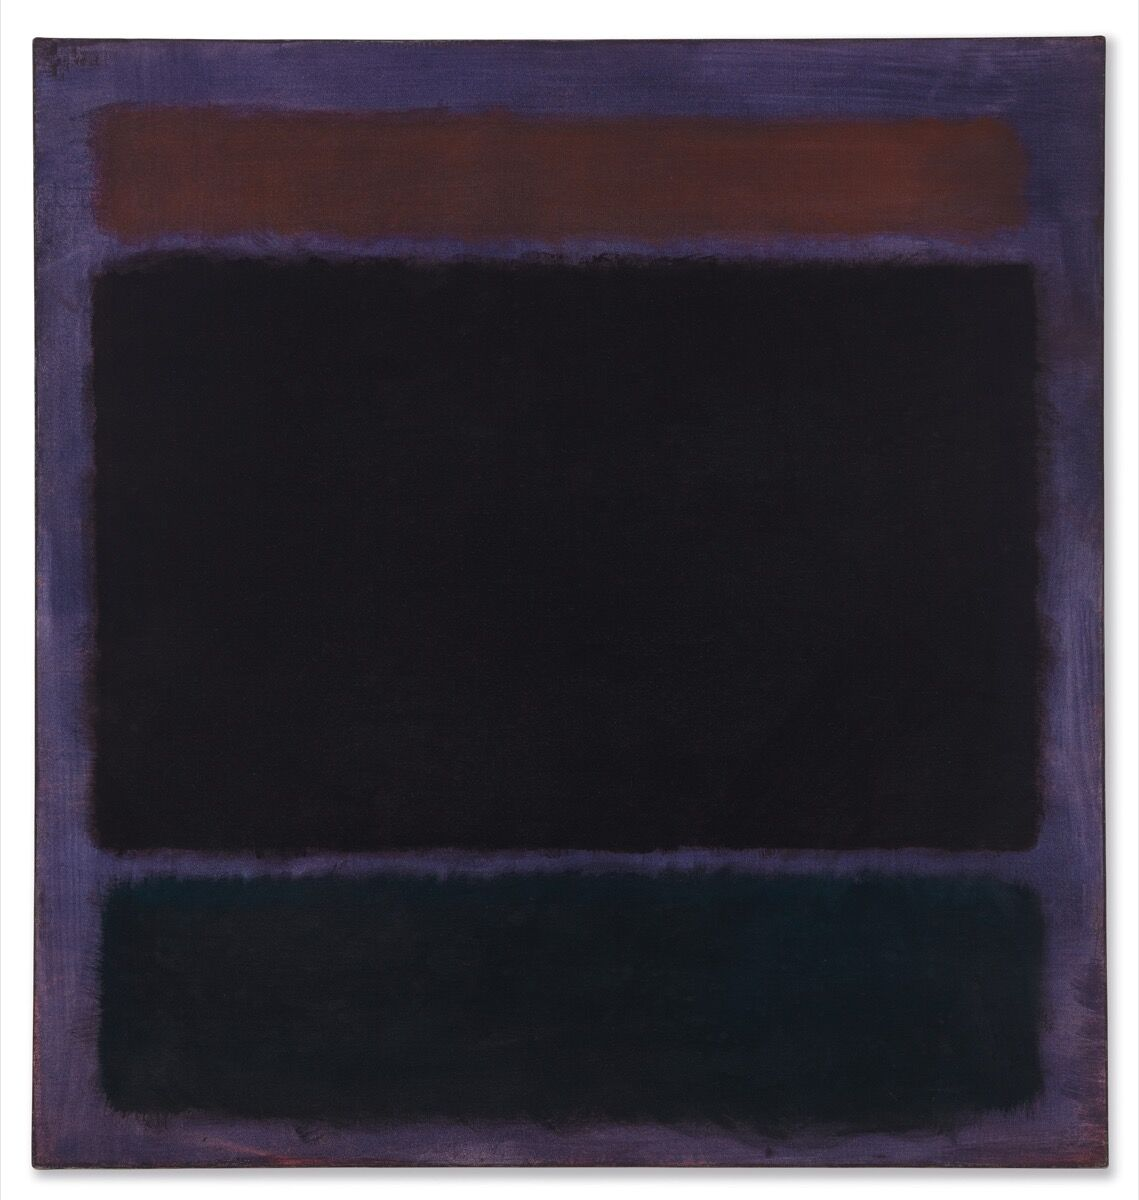 Mark Rothko, Untitled (Rust, Blacks on Plum), 1962. Courtesy of Christie's.